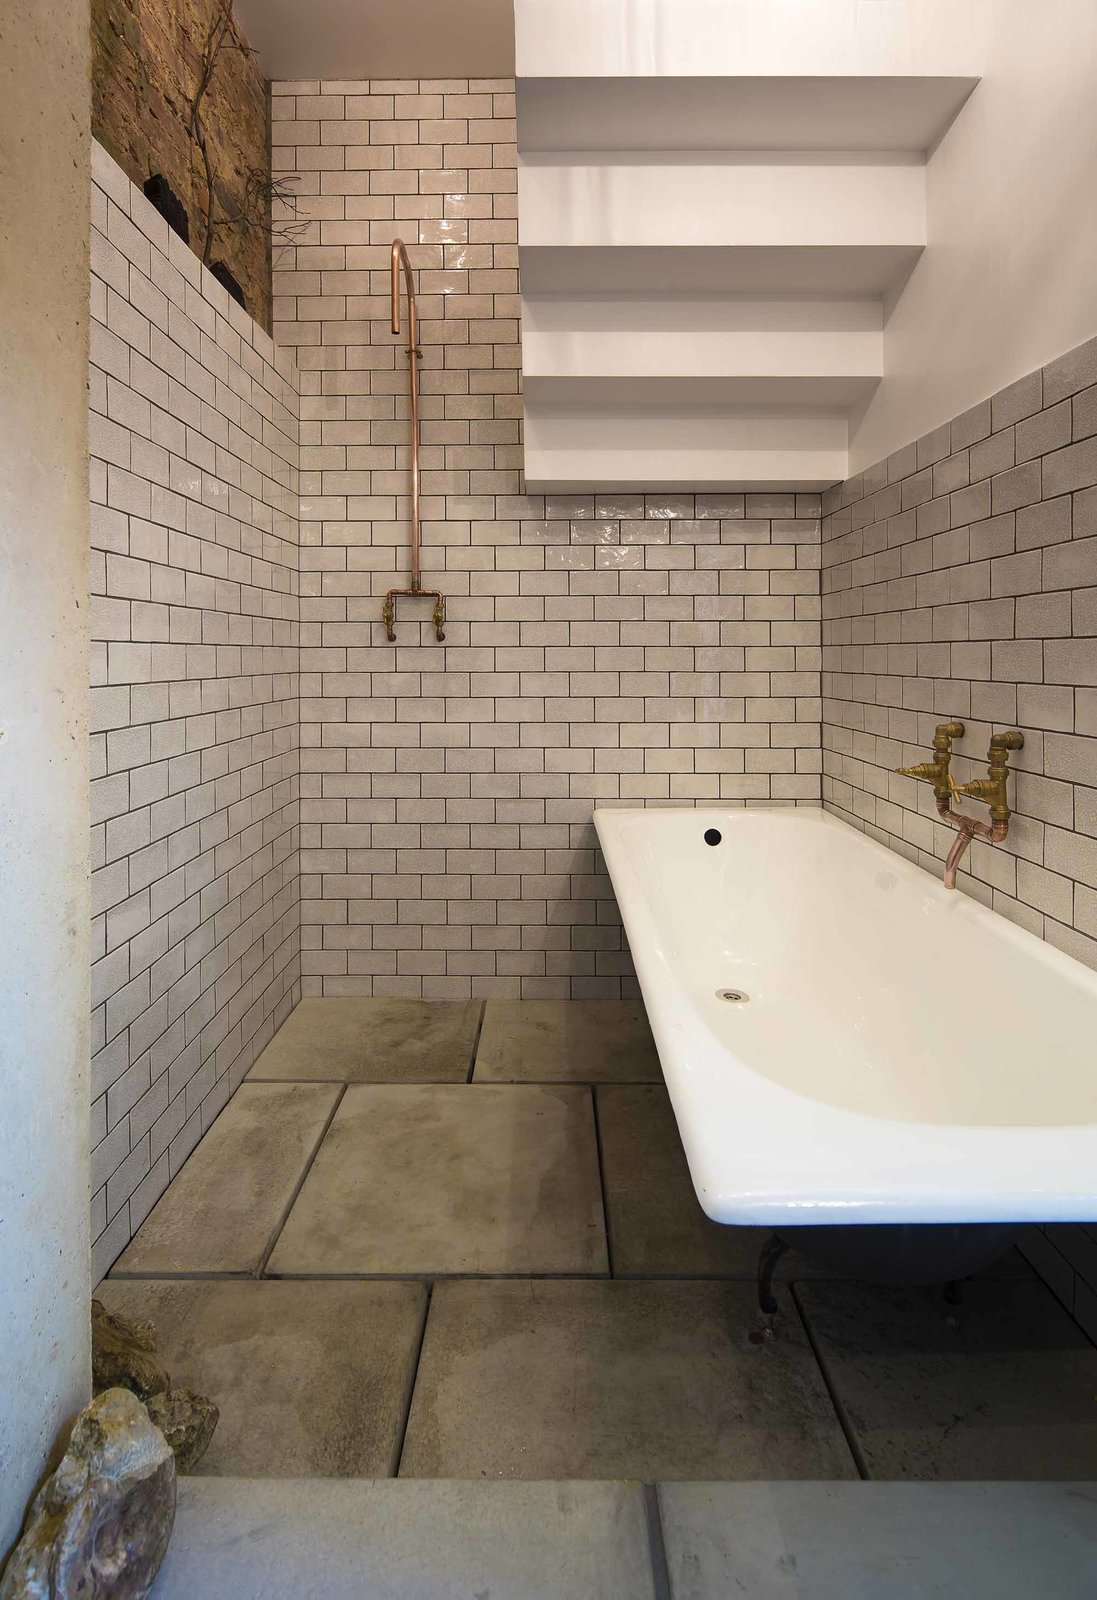 Bath Room and Concrete Floor In the bathroom beneath the stairs, copper fixtures and subway tile feel at once sensitive to the home's roots and very of the moment. It is this attention to cohesiveness that the Don't Move Improve! award seeks to recognize.  Bathroom from An Award-Winning London Addition Balances New and Old